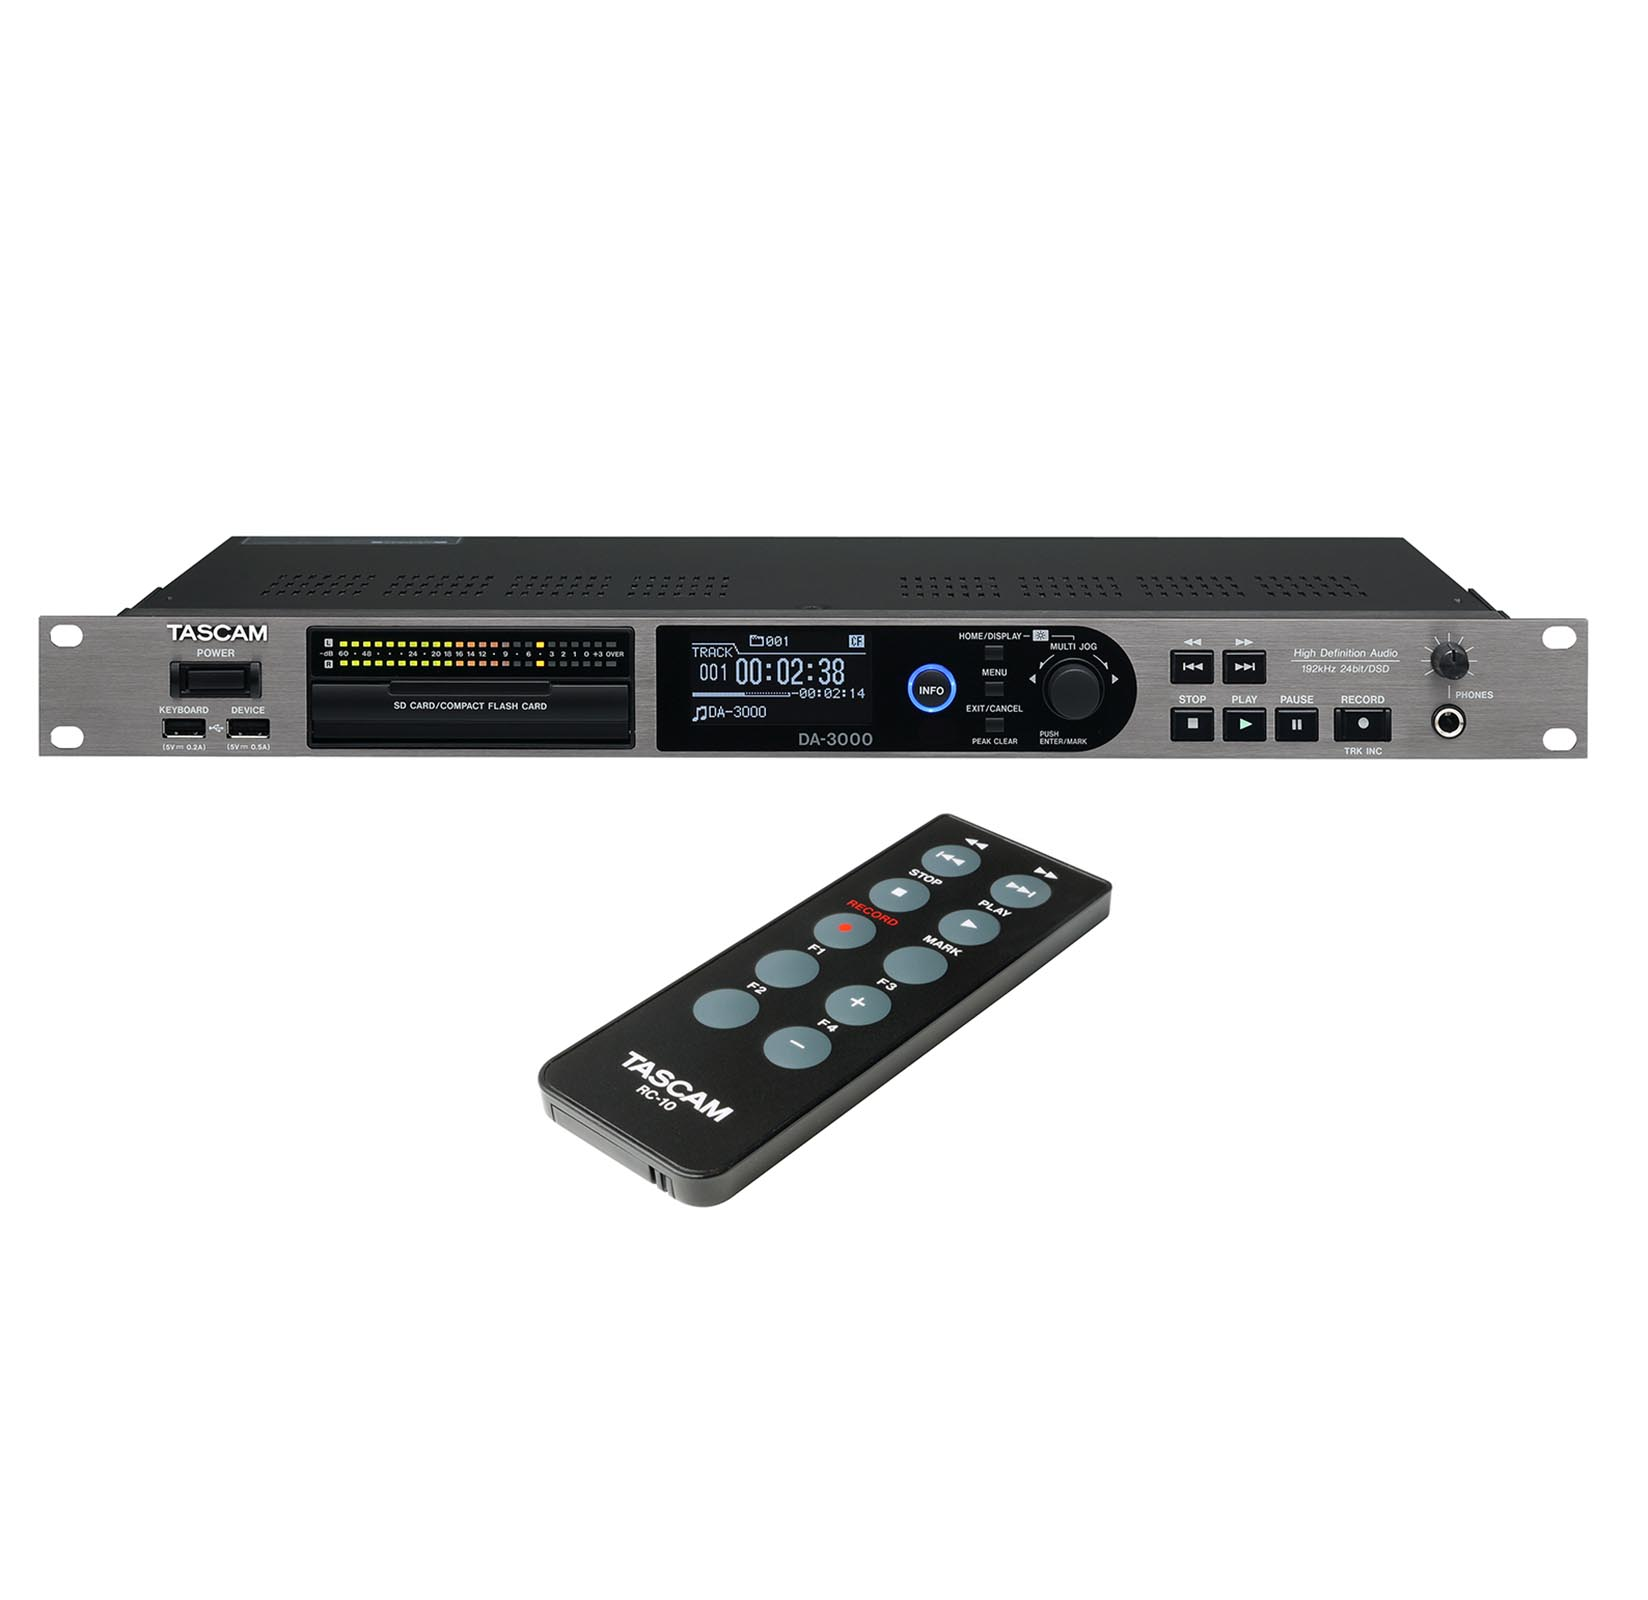 TASCAM DA-3000 Professional 2 Ch Stereo Master Audio Recorder and ADDA Converter (Refurbished)